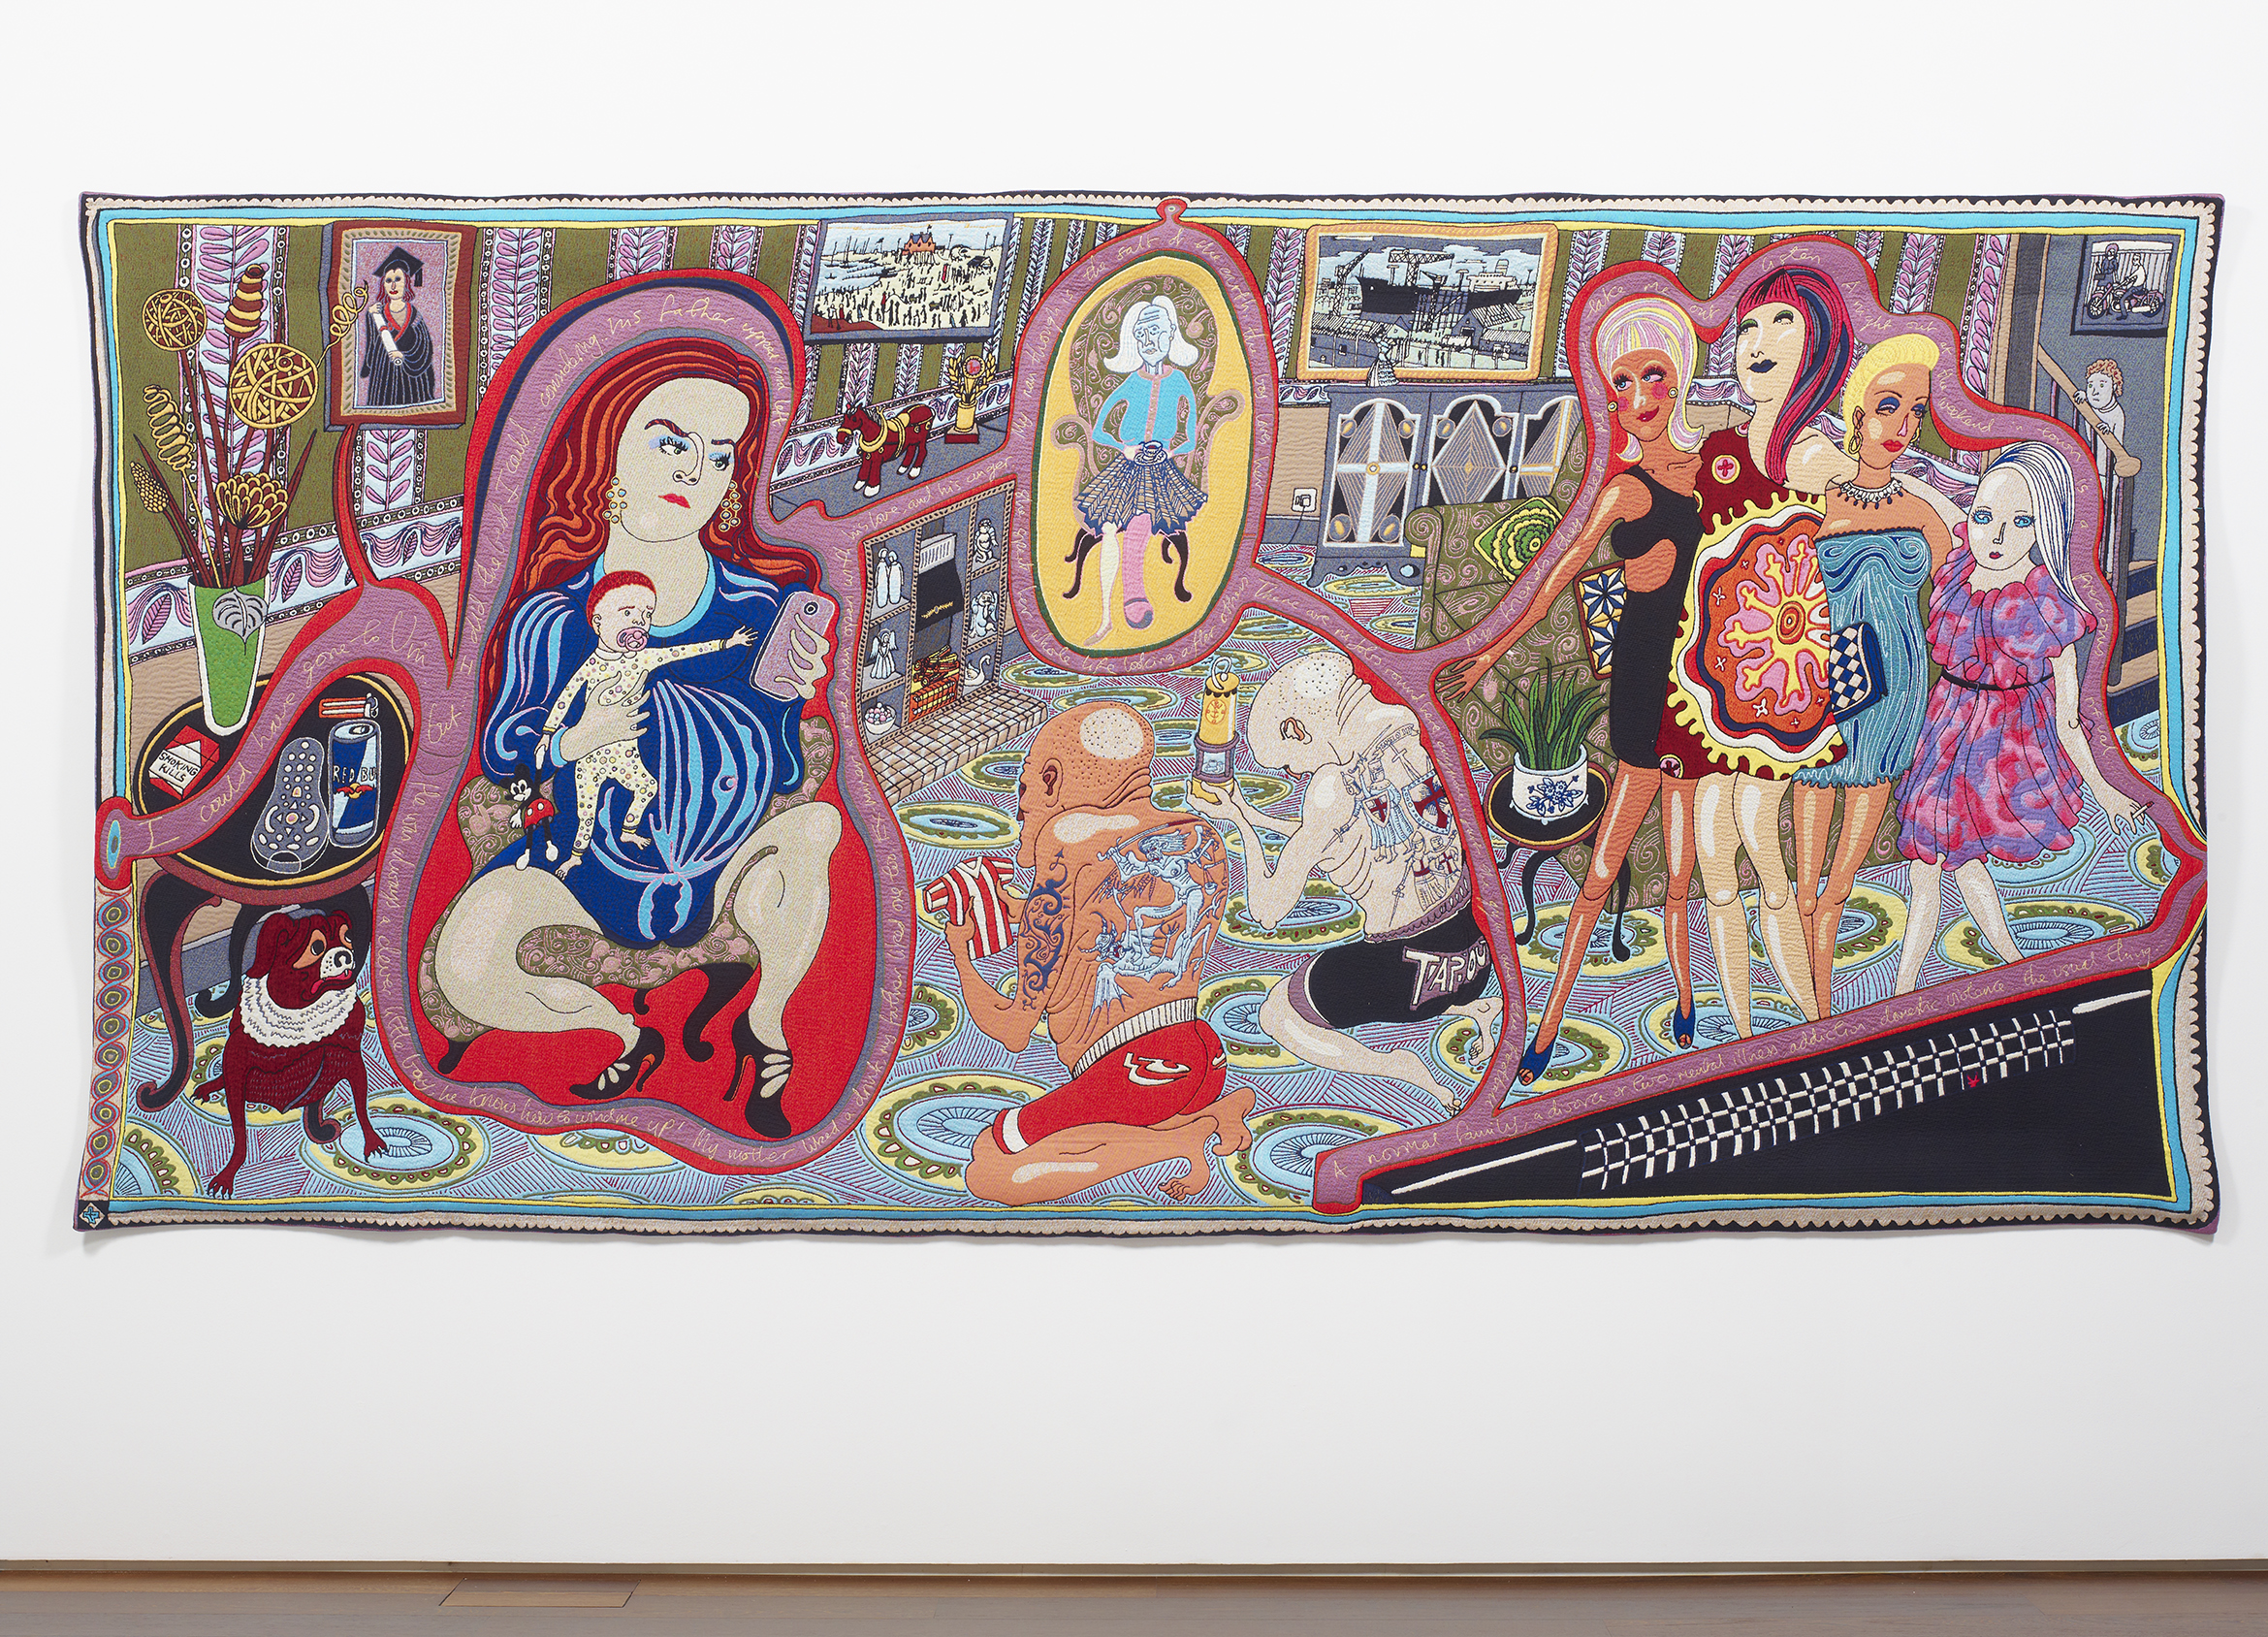 Grayson Perry The Adoration of the Cage Fighters 2012 © the artist. Arts Council Collection, Southbank Centre, London and British Council. Gift of the artist and Victoria Miro Gallery with the support of Channel 4 Television, the Art Fund and Sfumato Foundation with additional support from Alix Partners.